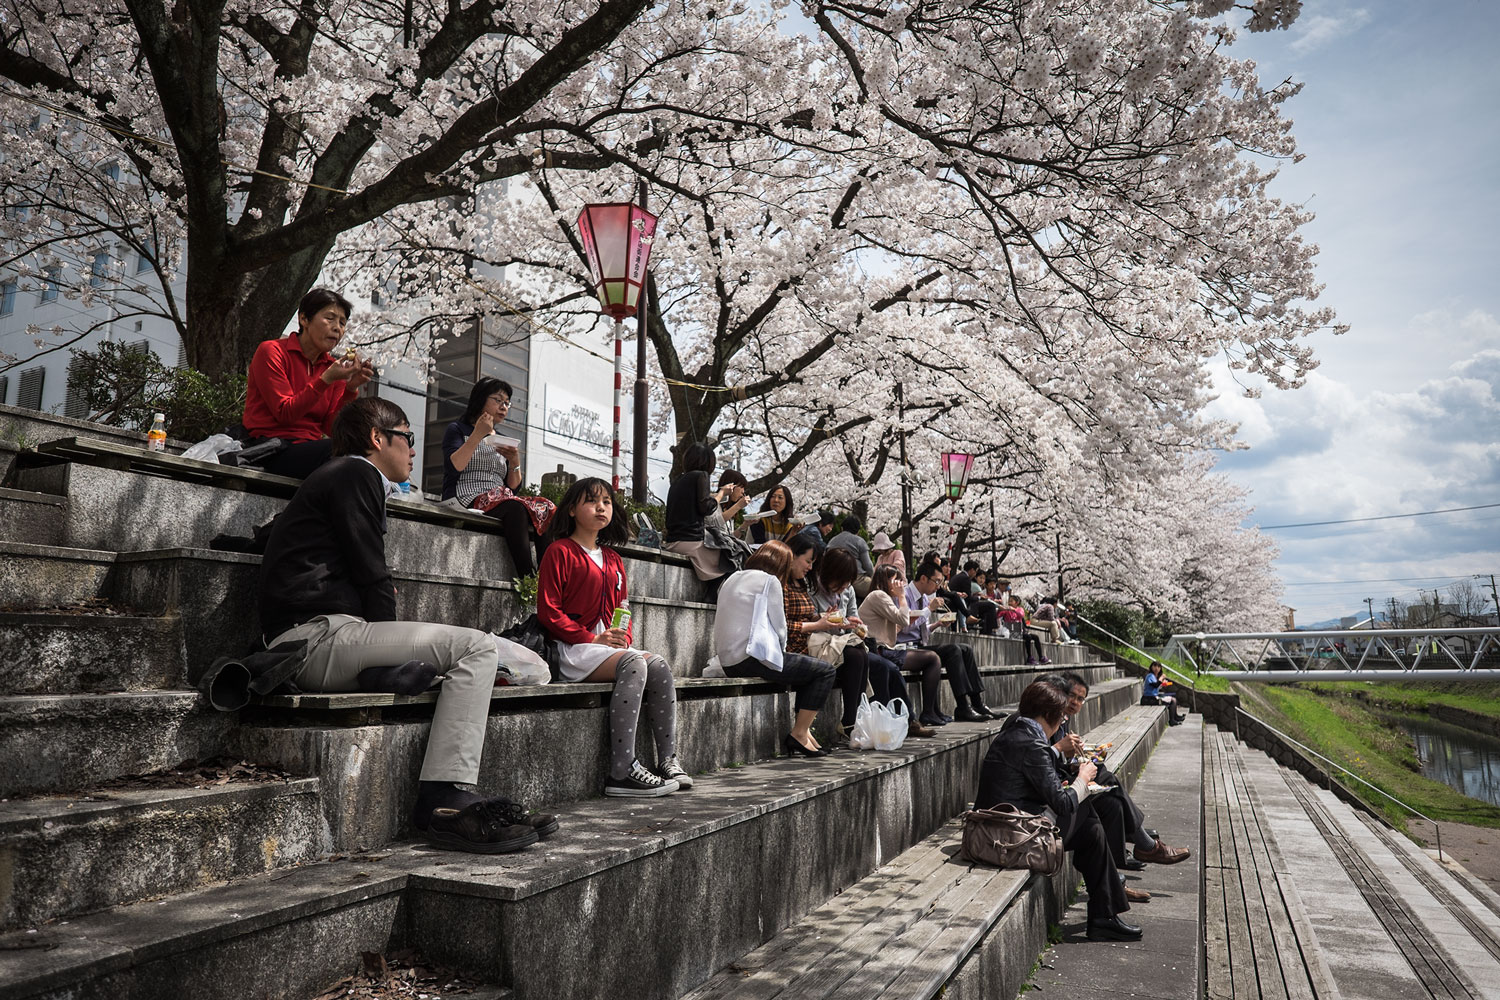 With the sakura blooming, people start enjoying spending their lunch break outside!